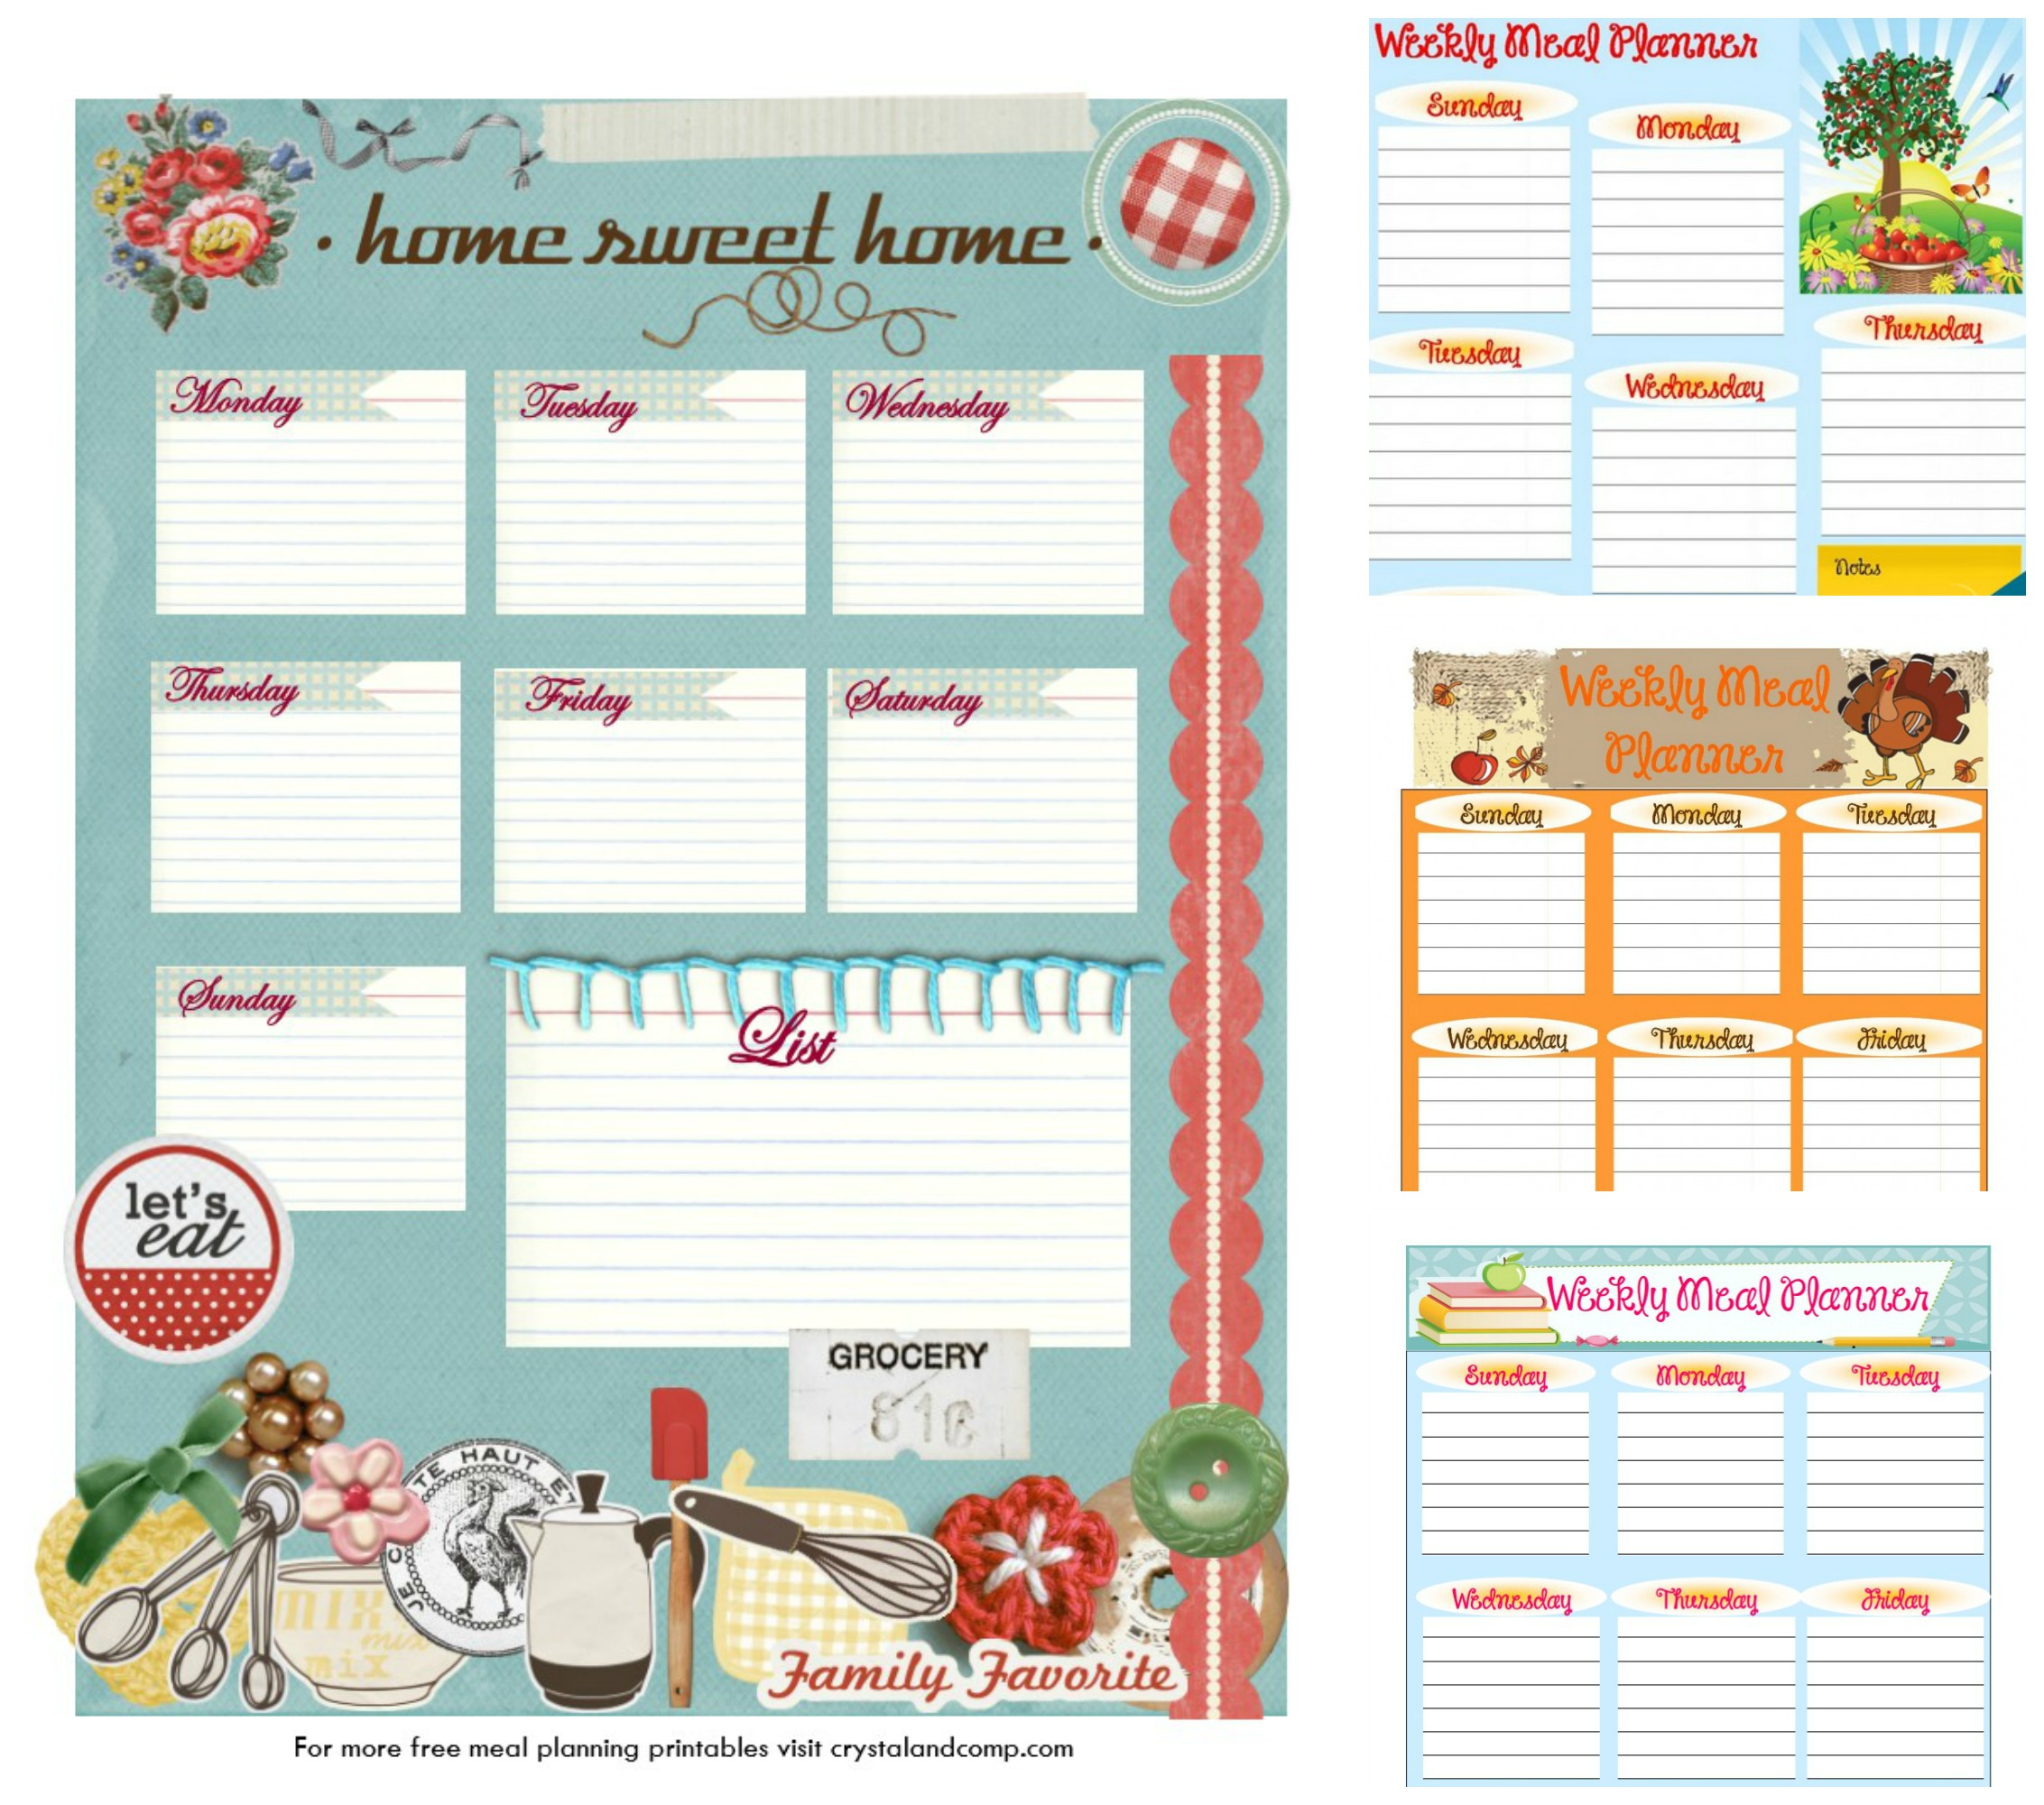 photo about Meal Planning Printable titled Cost-free Printable Dinner Designs